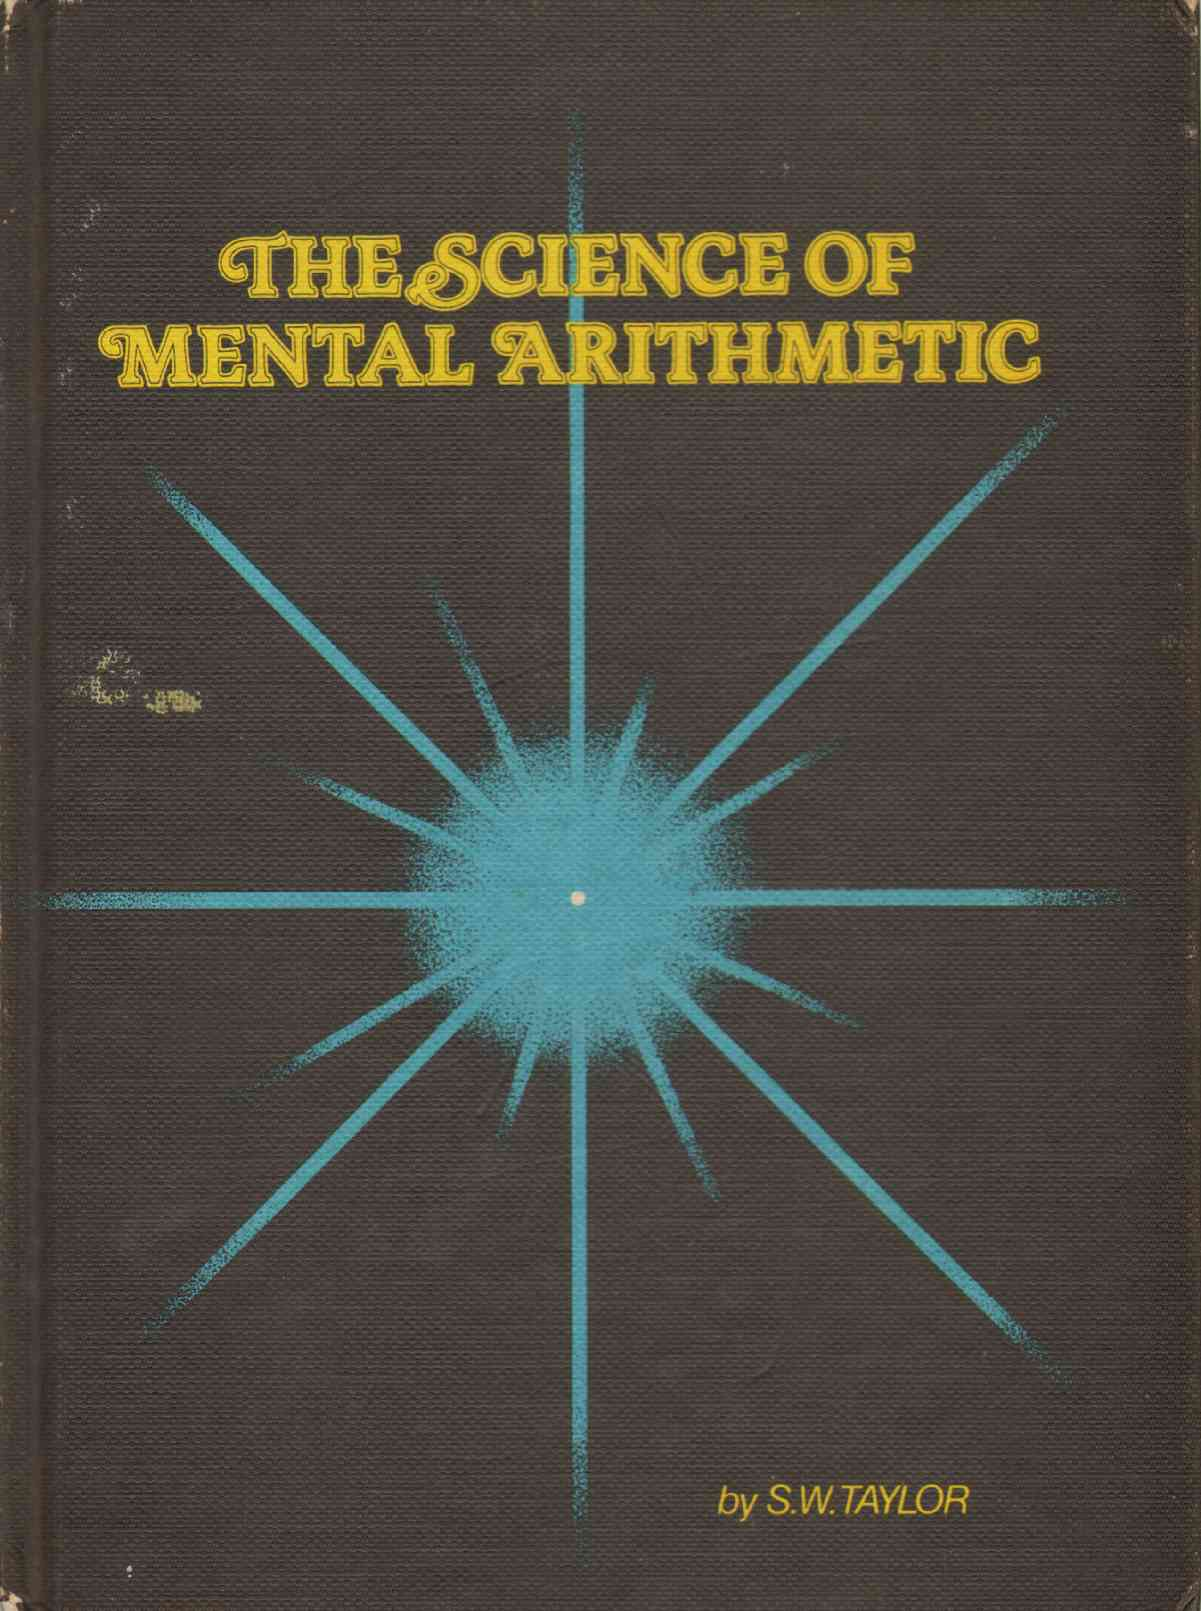 Image for THE SCIENCE OF MENTAL ARITHMETIC